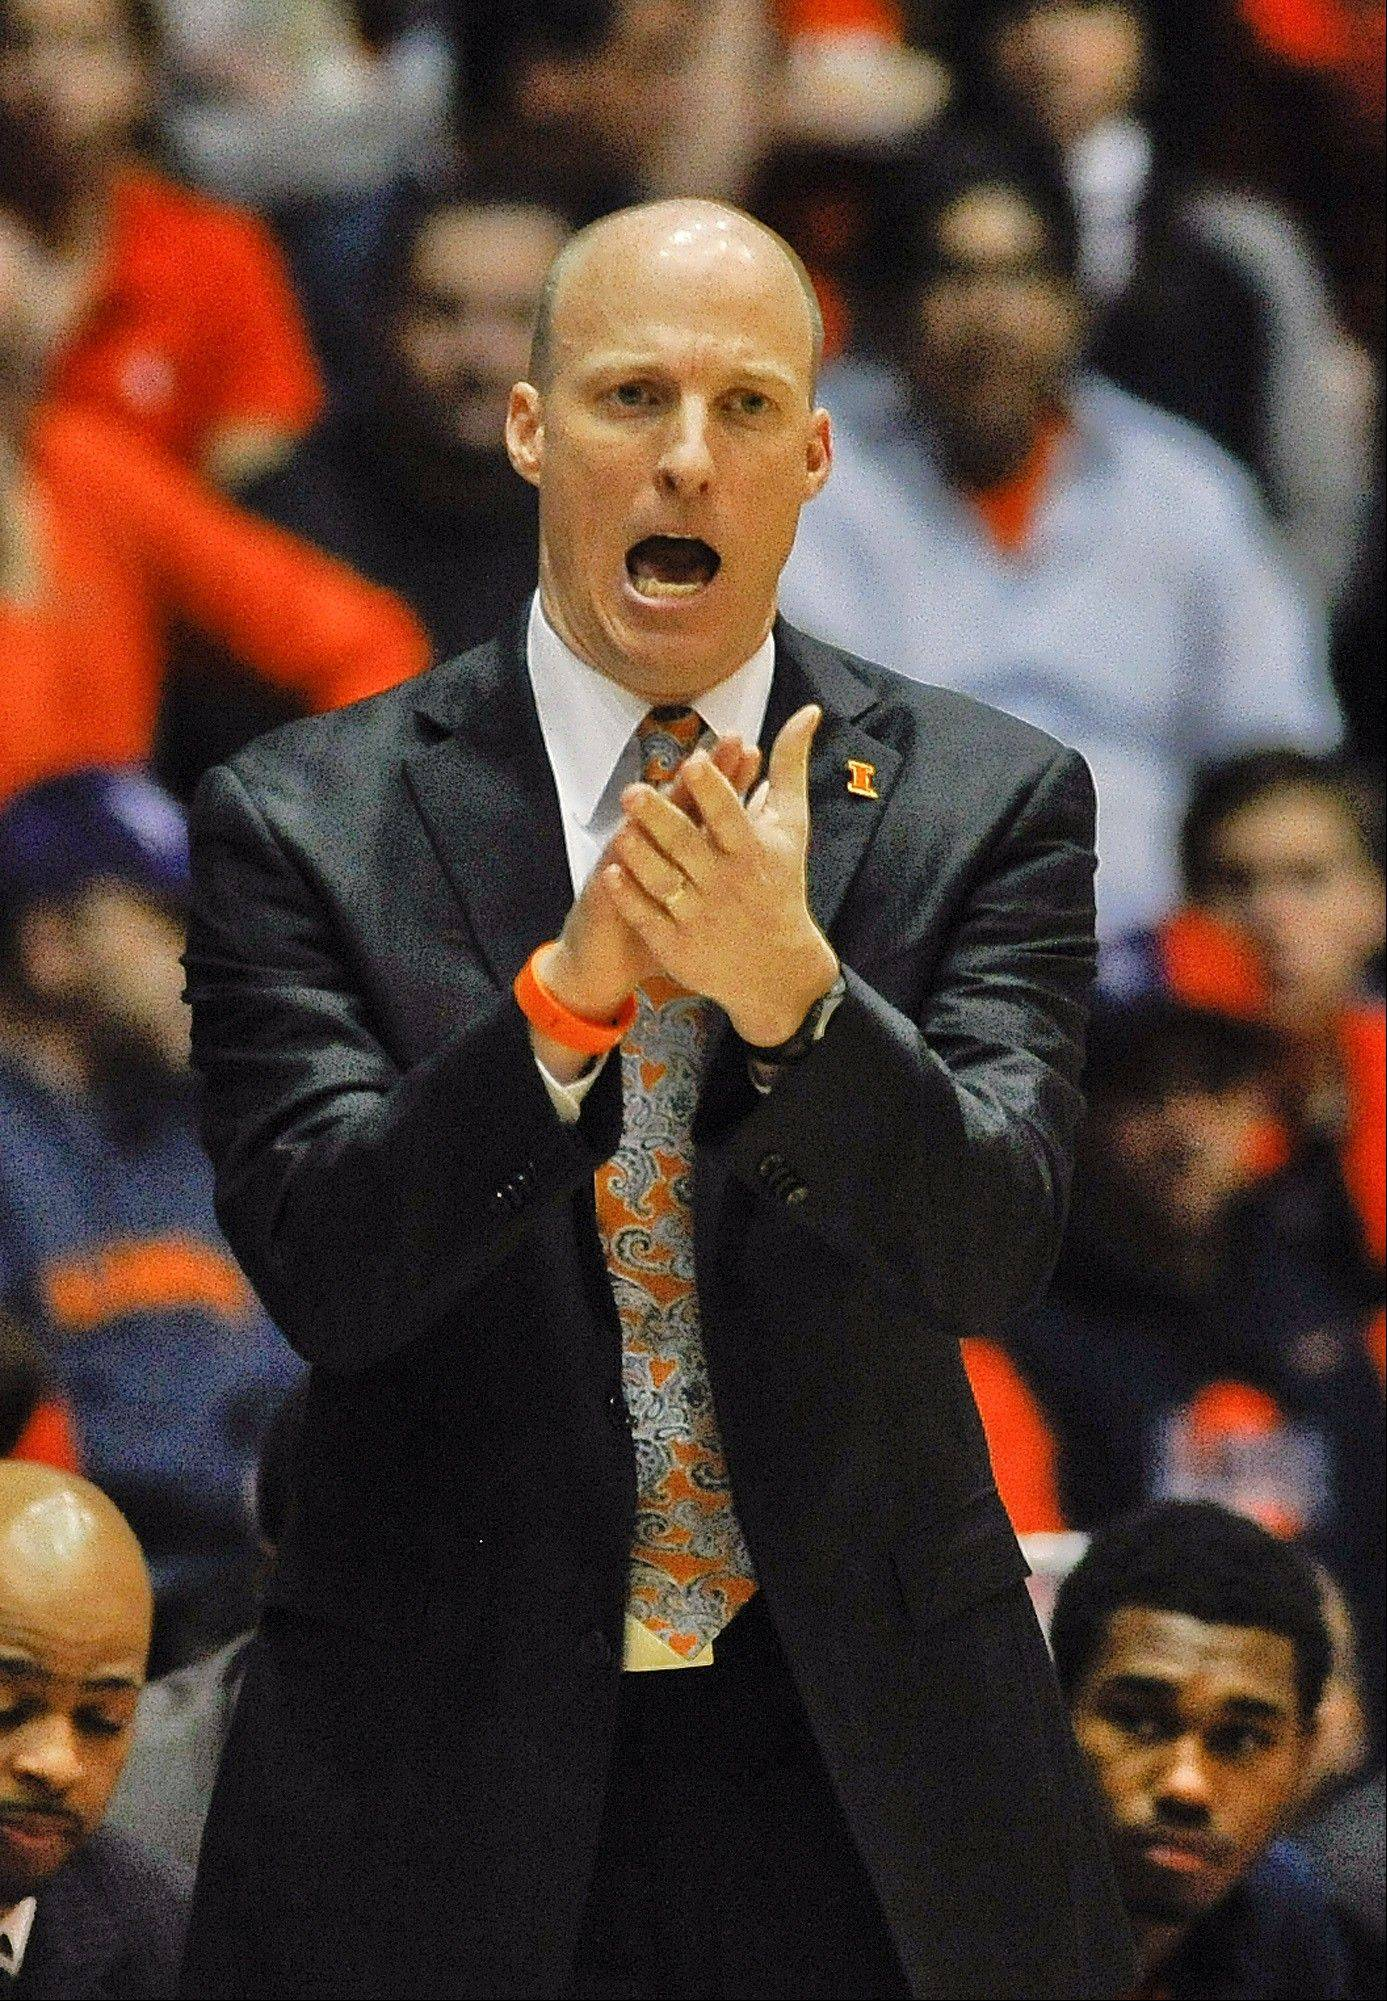 Illinois head coach John Groce yells while on the sideline during the first half of an NCAA college basketball game in Evanston, Ill., on Sunday, Jan. 12, 2014.